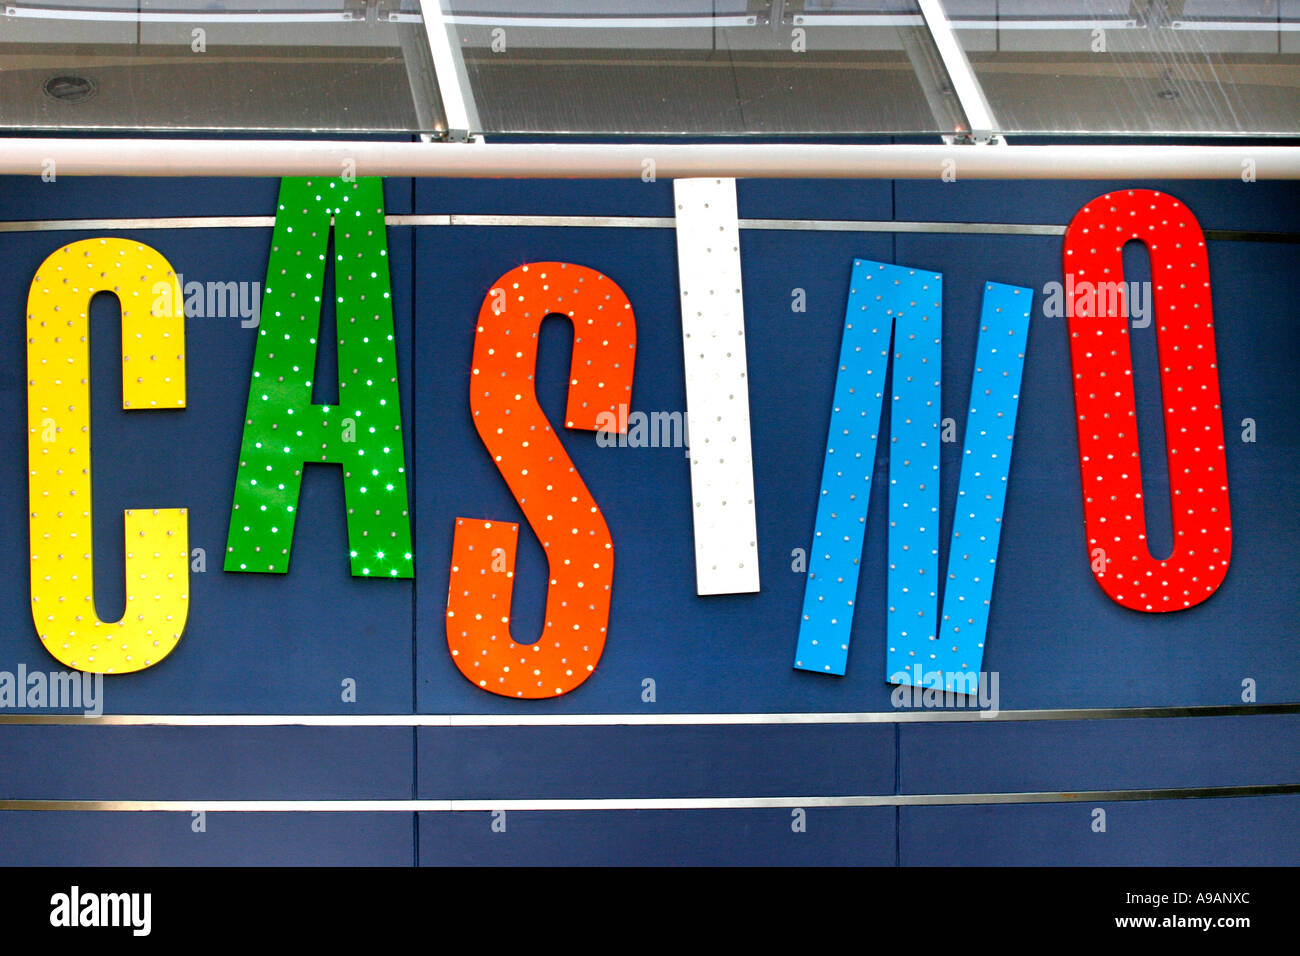 Colorful Casino sign at Star city Darling Harbour in Sydney - Stock Image